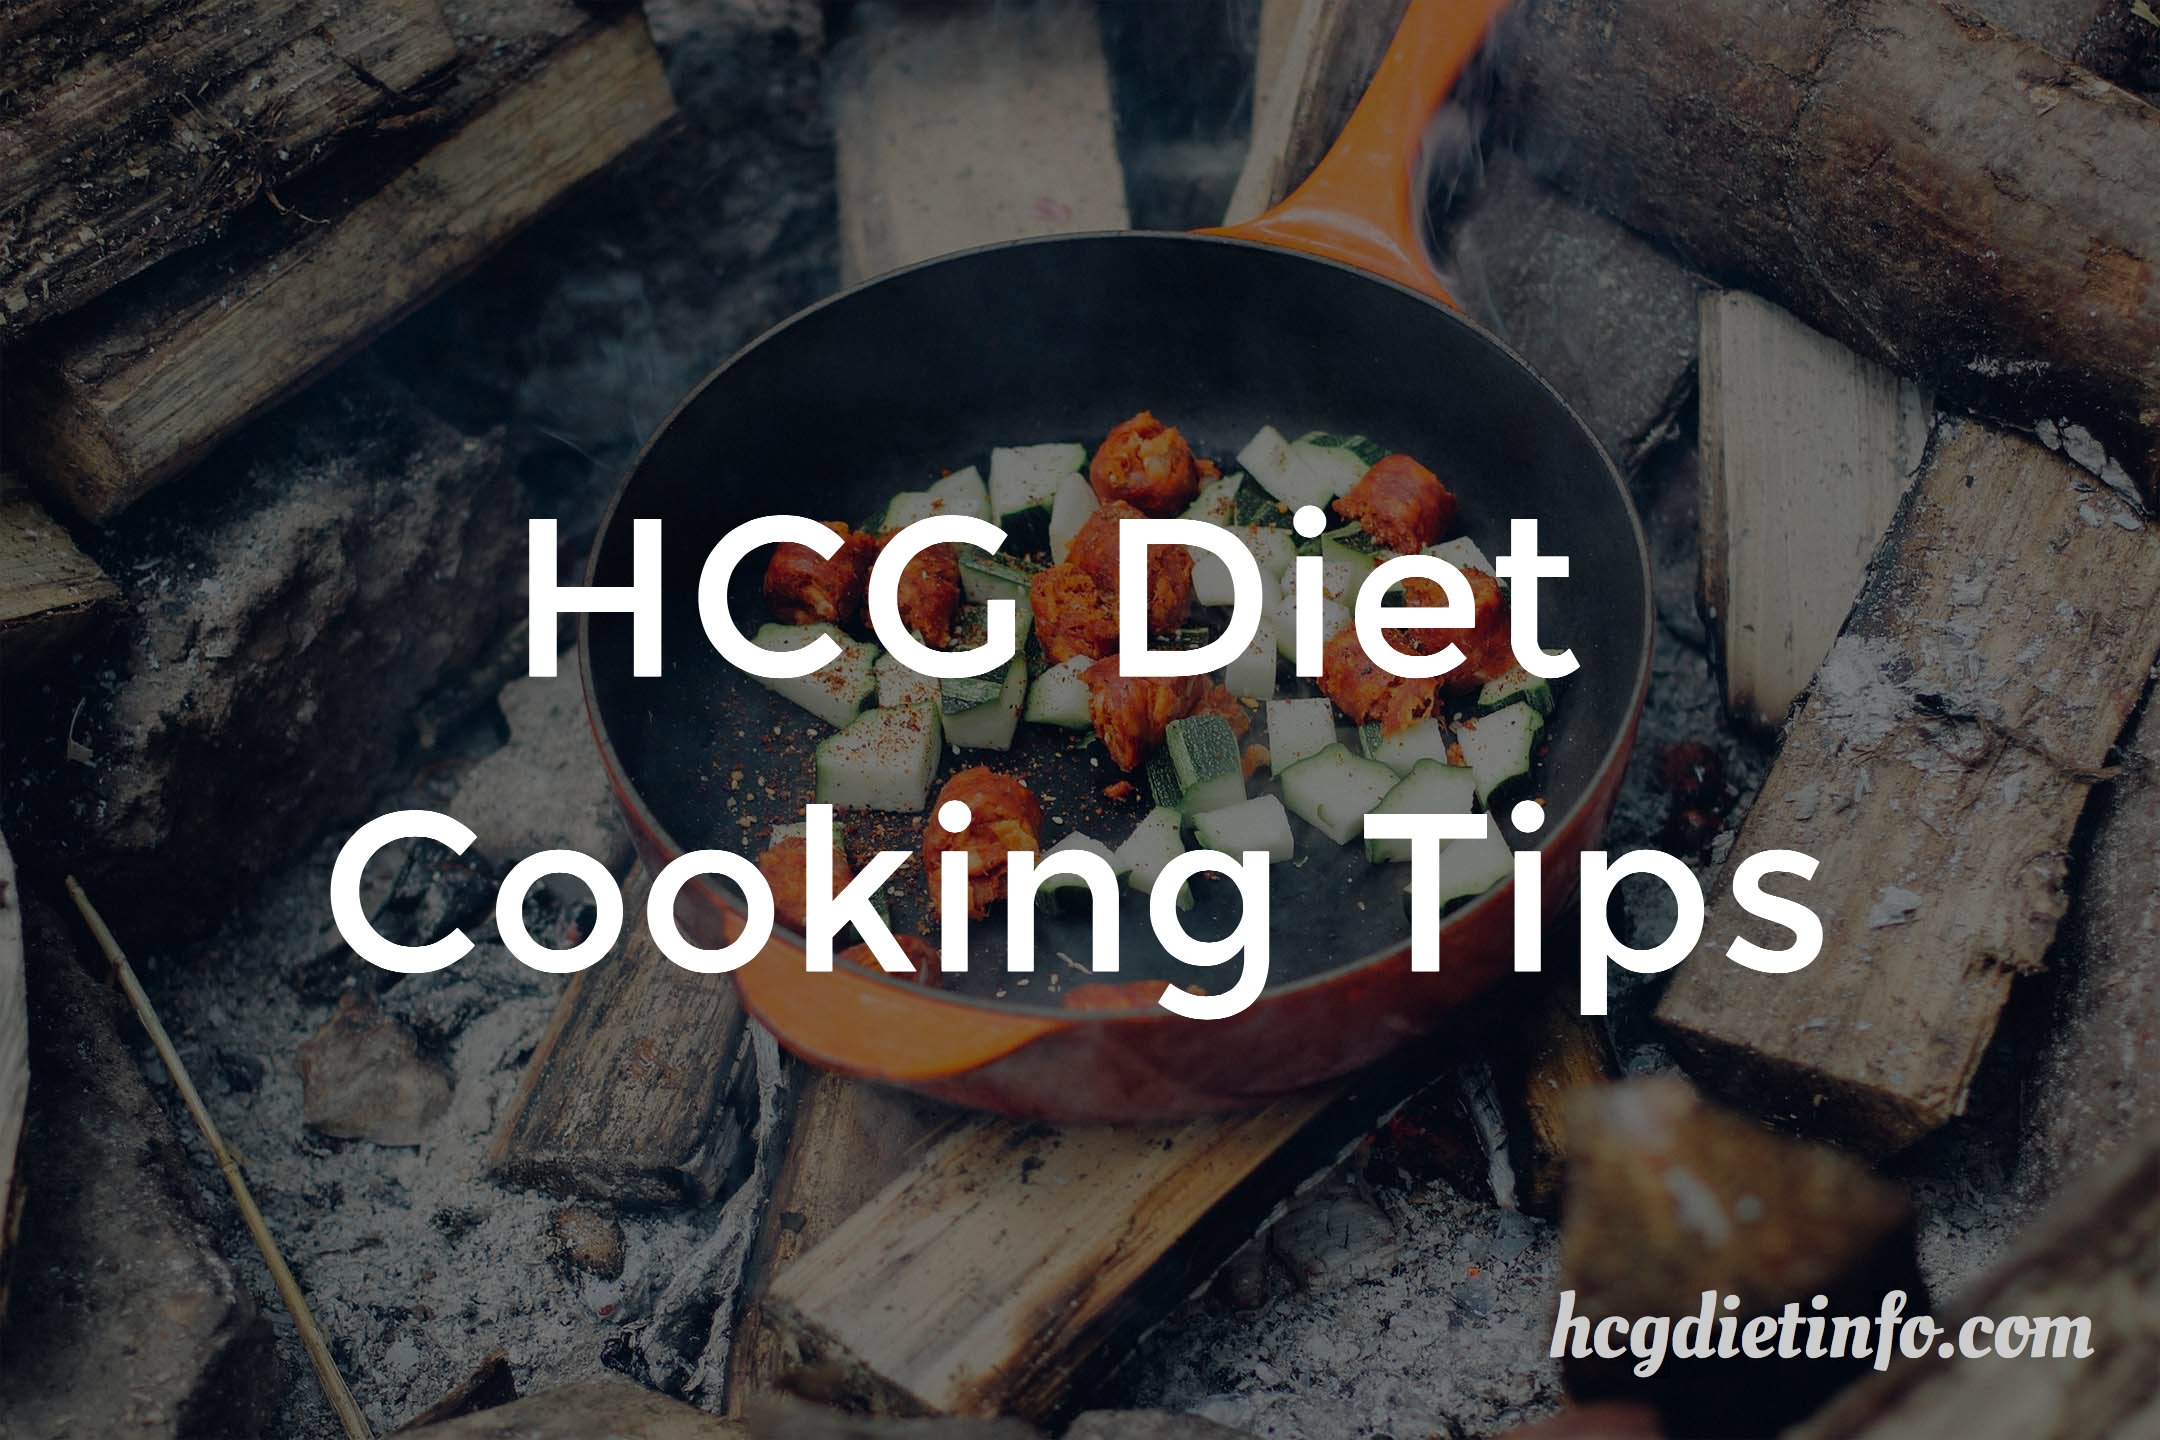 How to cook foods on the hcg diet plan hcg diet info how to cook foods on the hcg diet plan forumfinder Images